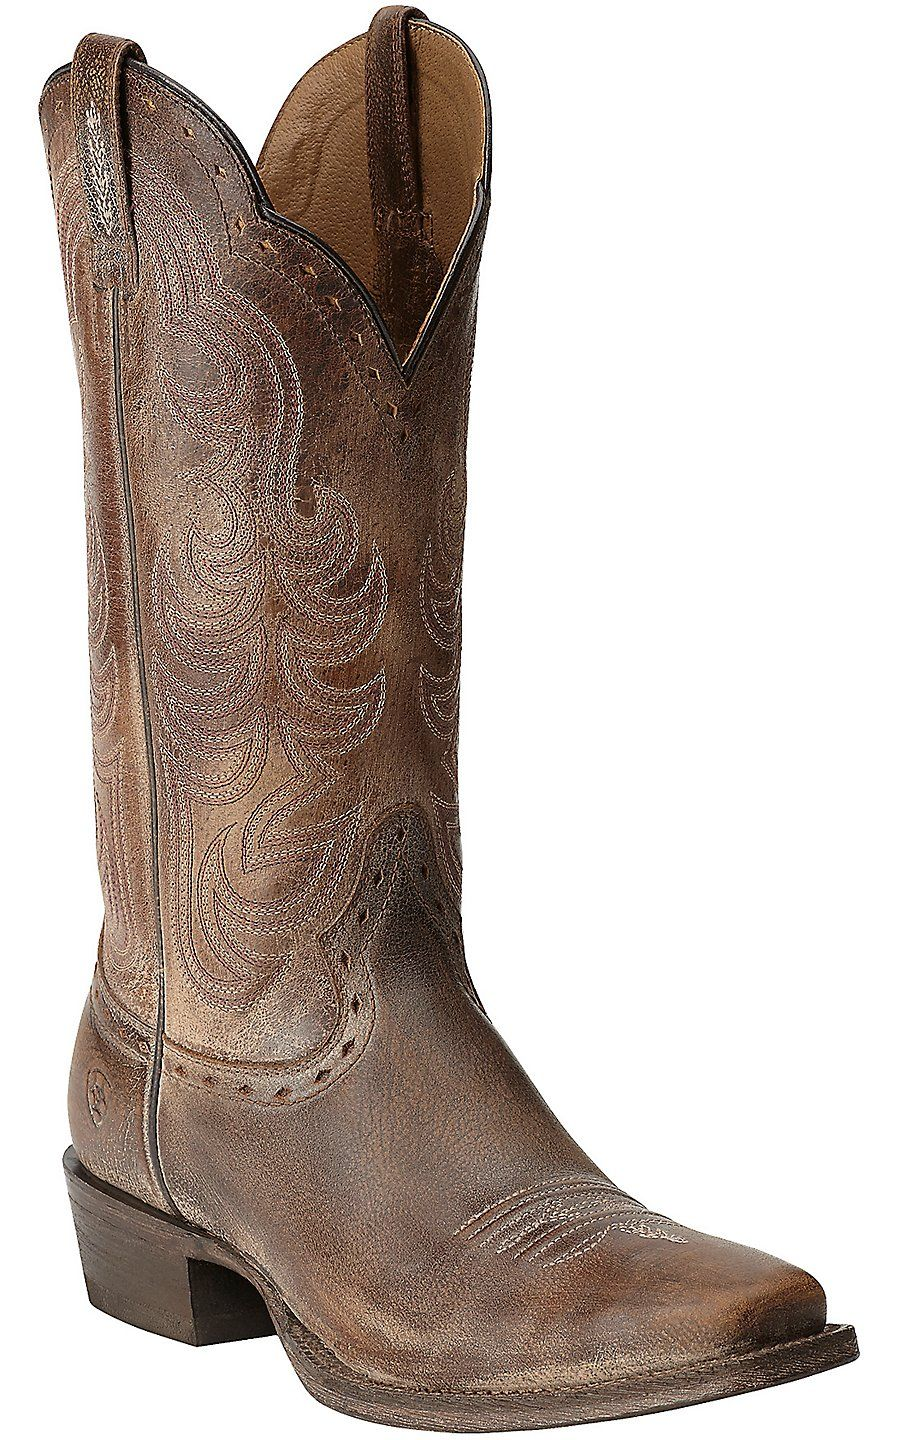 Ariat Women's Good Times Antique Brown Punchy Square Toe Western Boots |  Cavender's